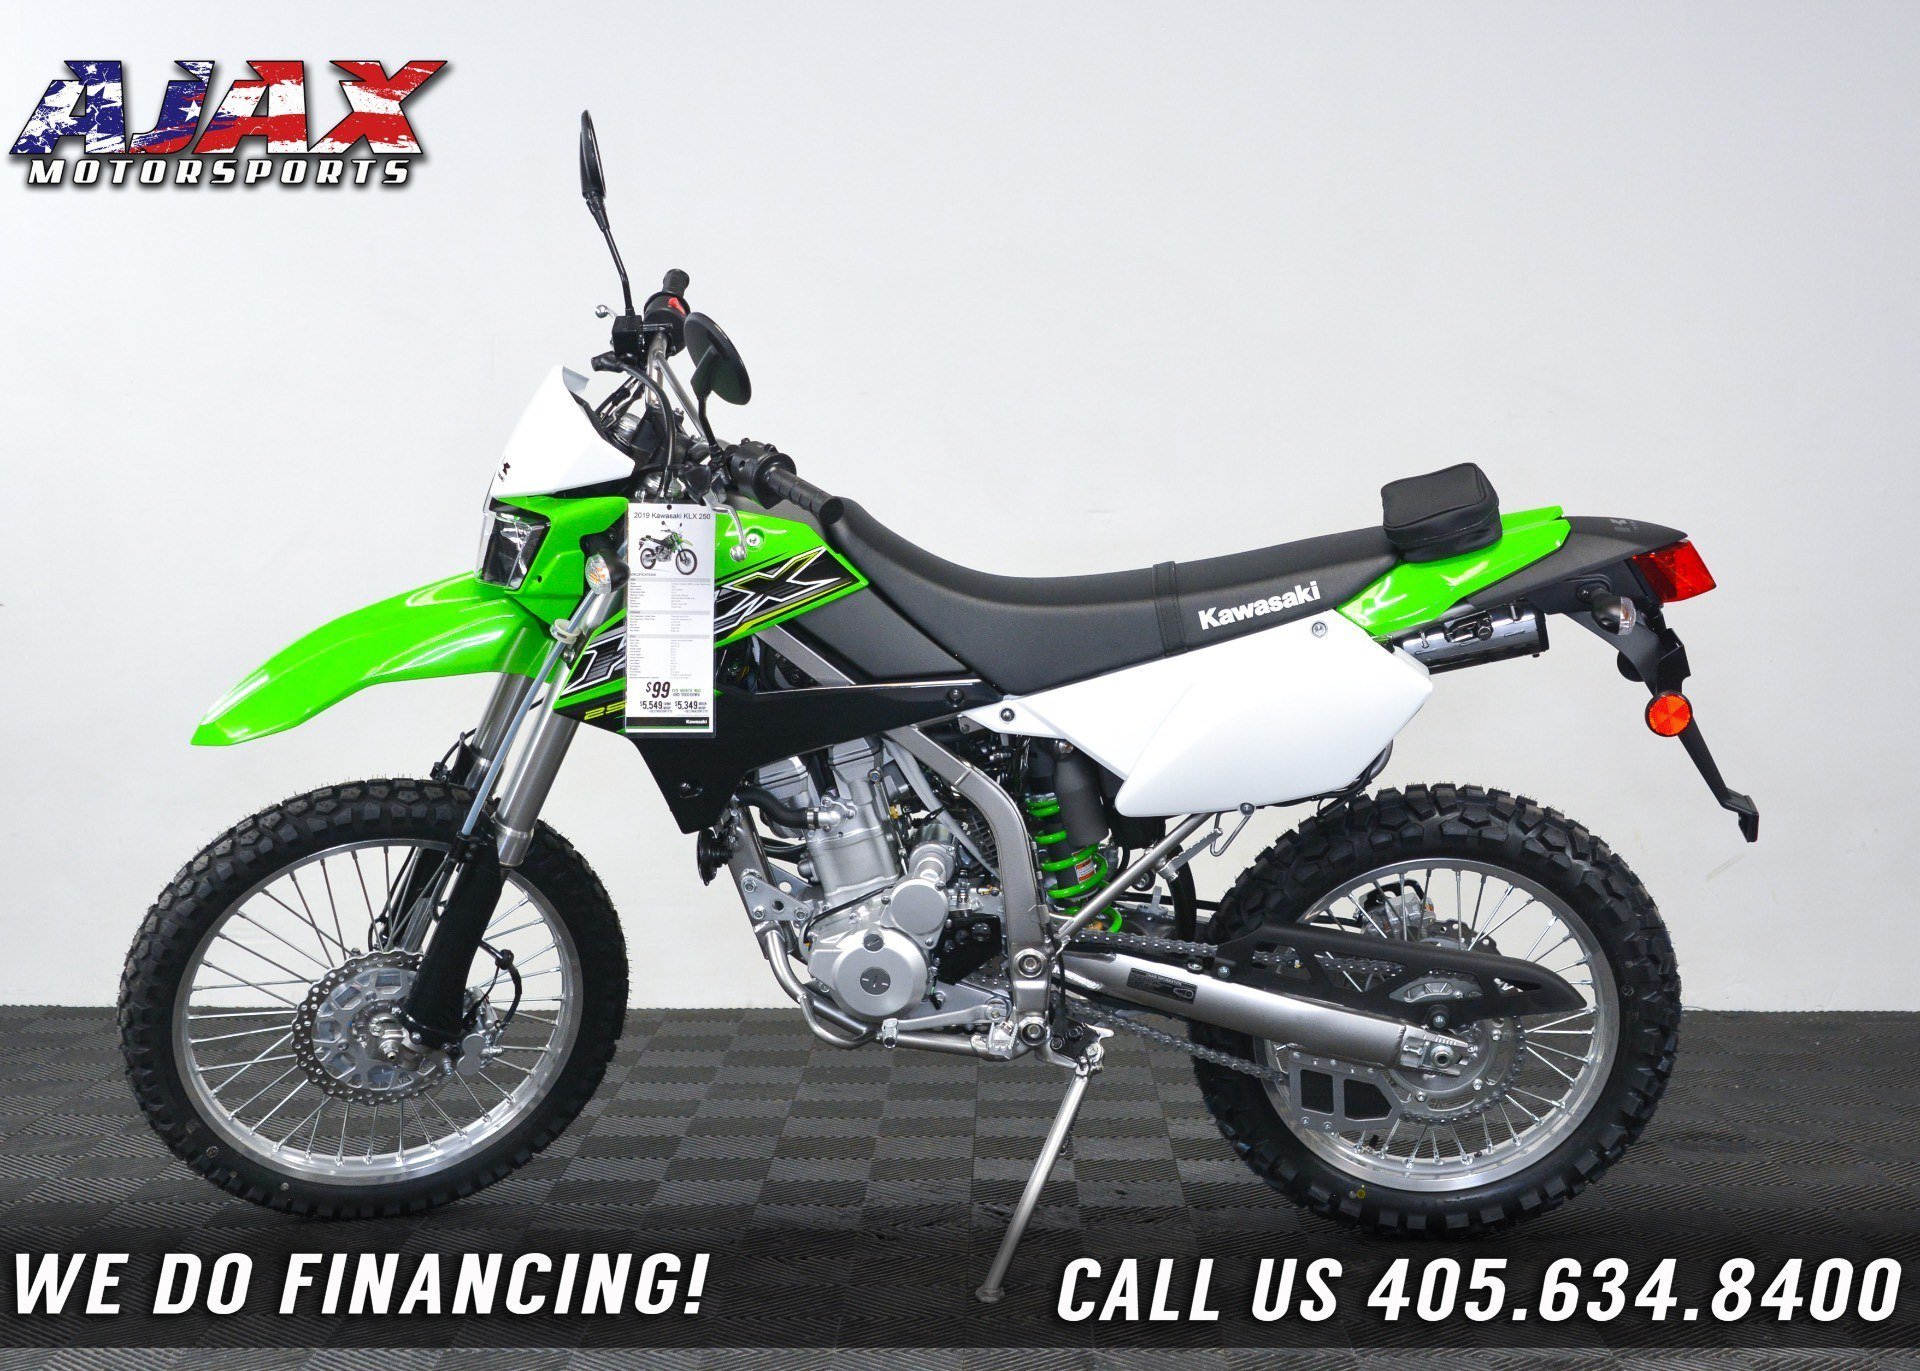 2019 Kawasaki KLX 250 in Oklahoma City, Oklahoma - Photo 6